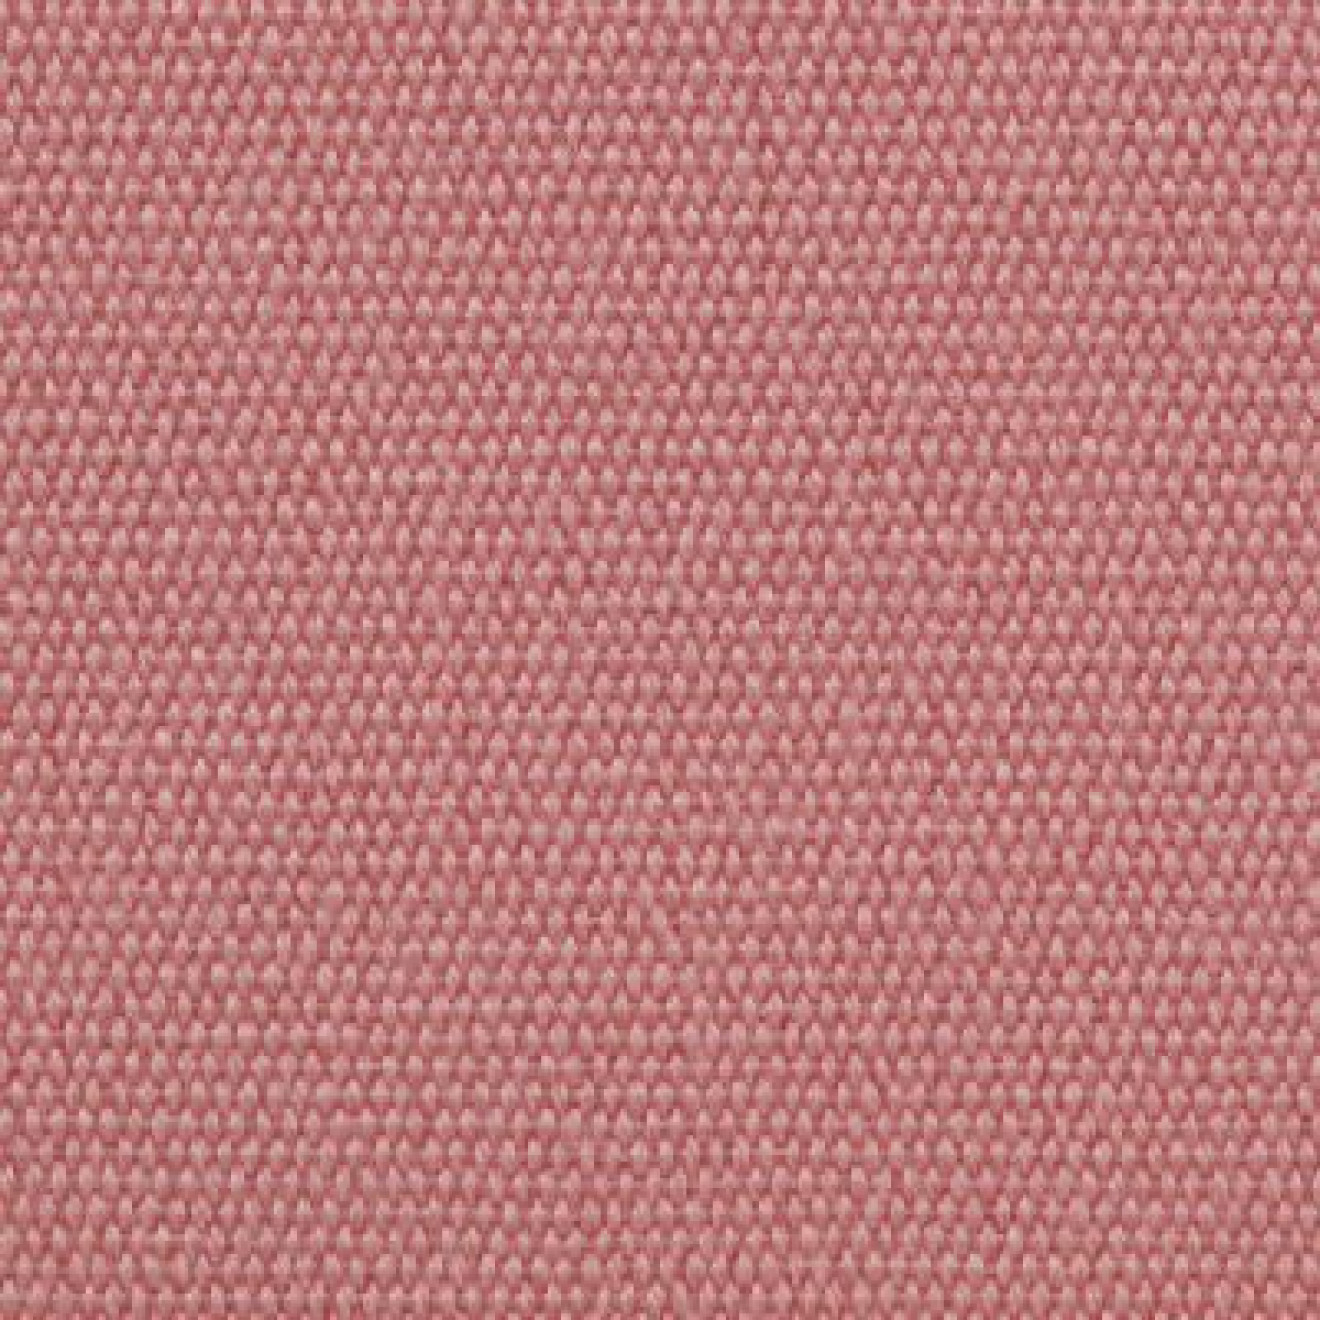 Rolle - Acrylstoff 63 Rosa